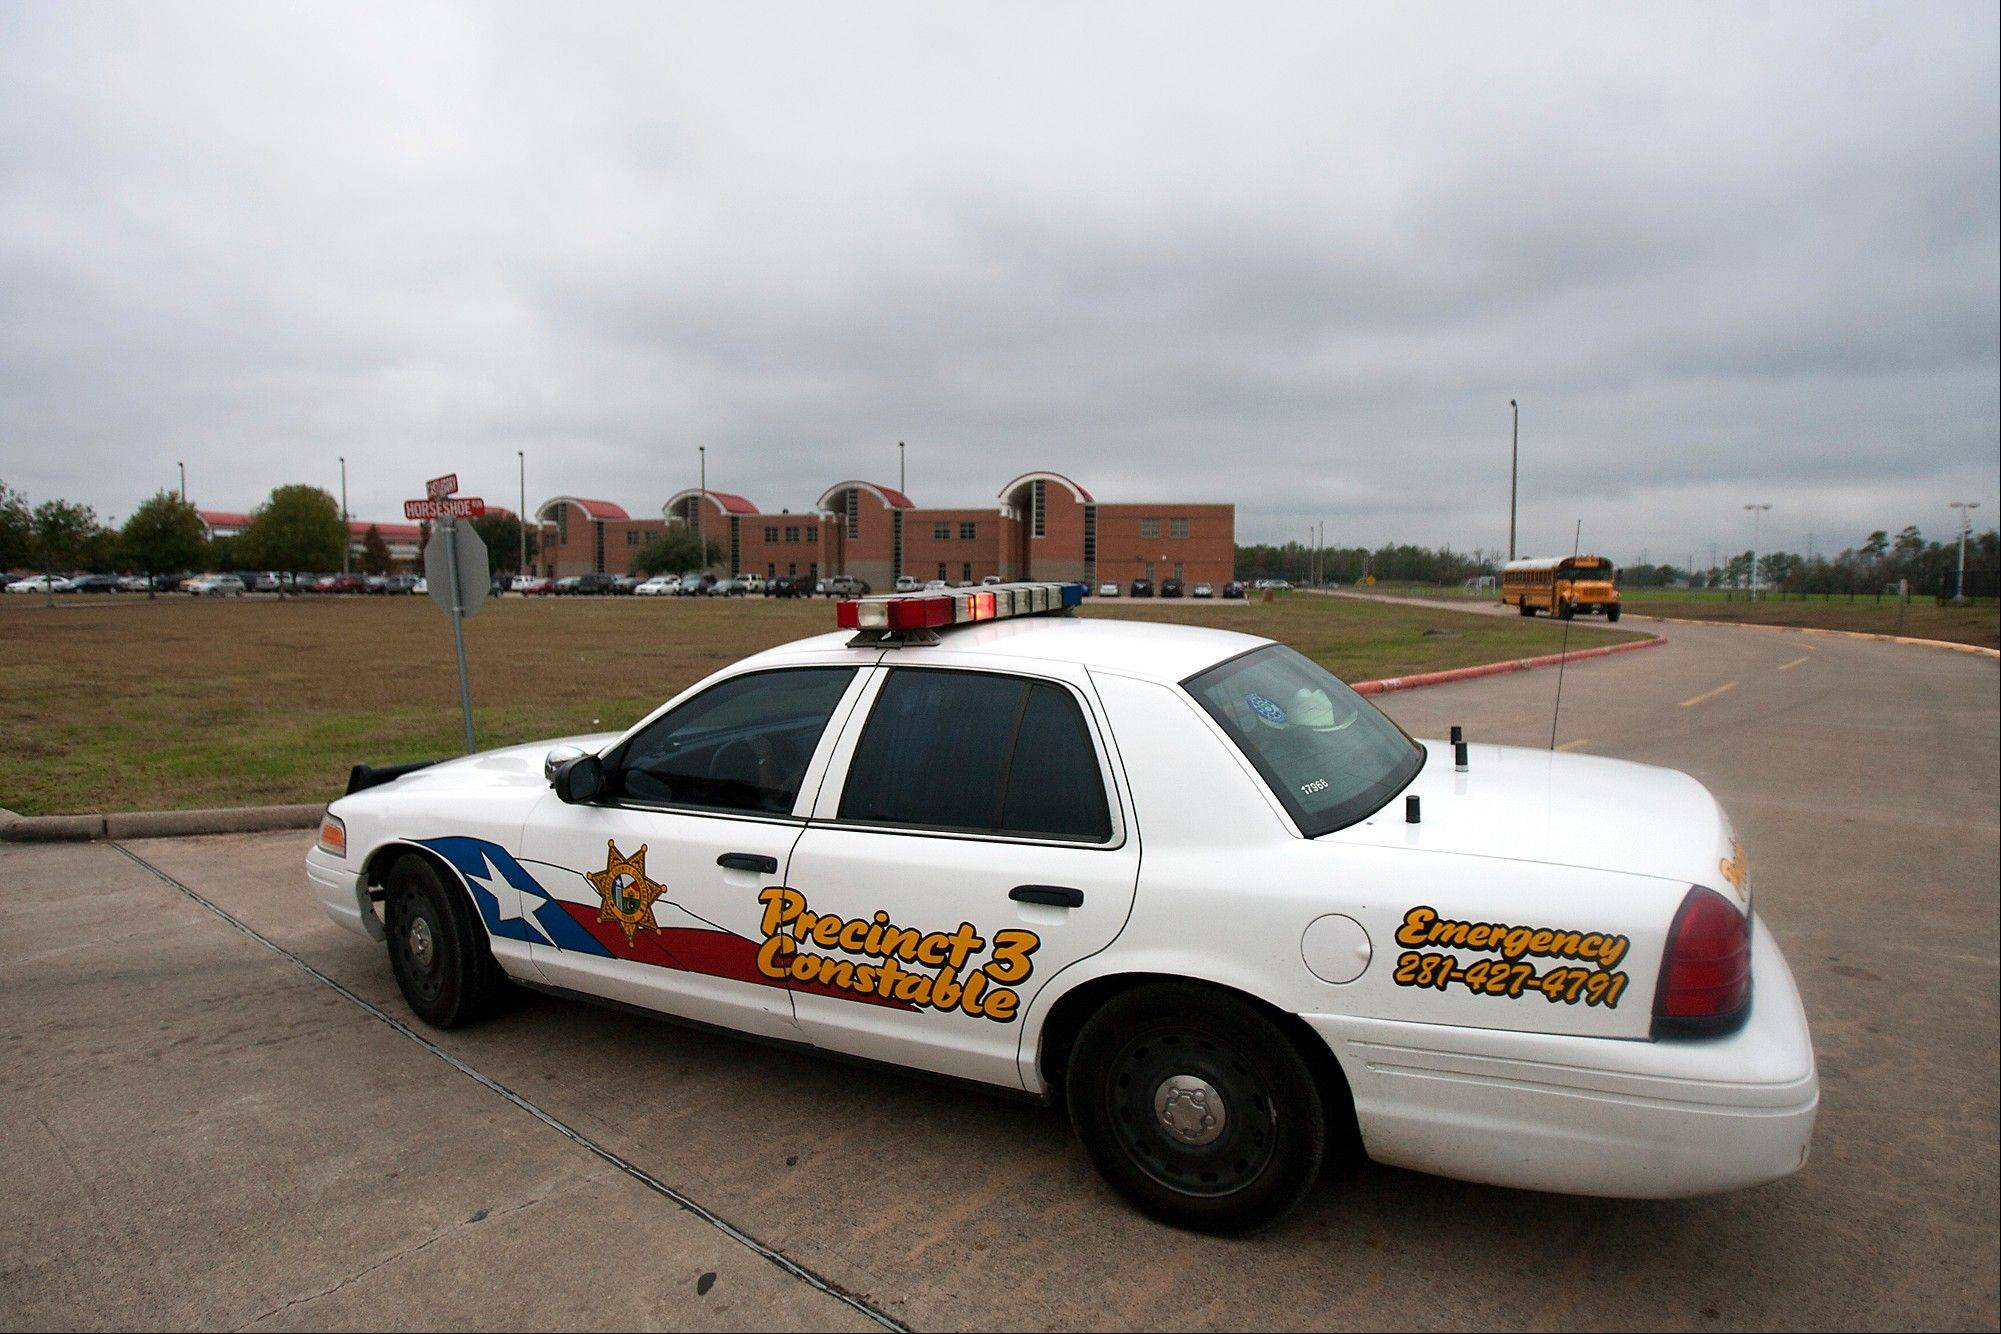 A police vehicle is parked near the entrance of North Shore High School after a shooting occurred Wednesday in Houston. Police say a high school student taken into custody after he sent a text message to a friend saying he wanted to hurt himself shot himself with a hidden gun while handcuffed inside a patrol car.